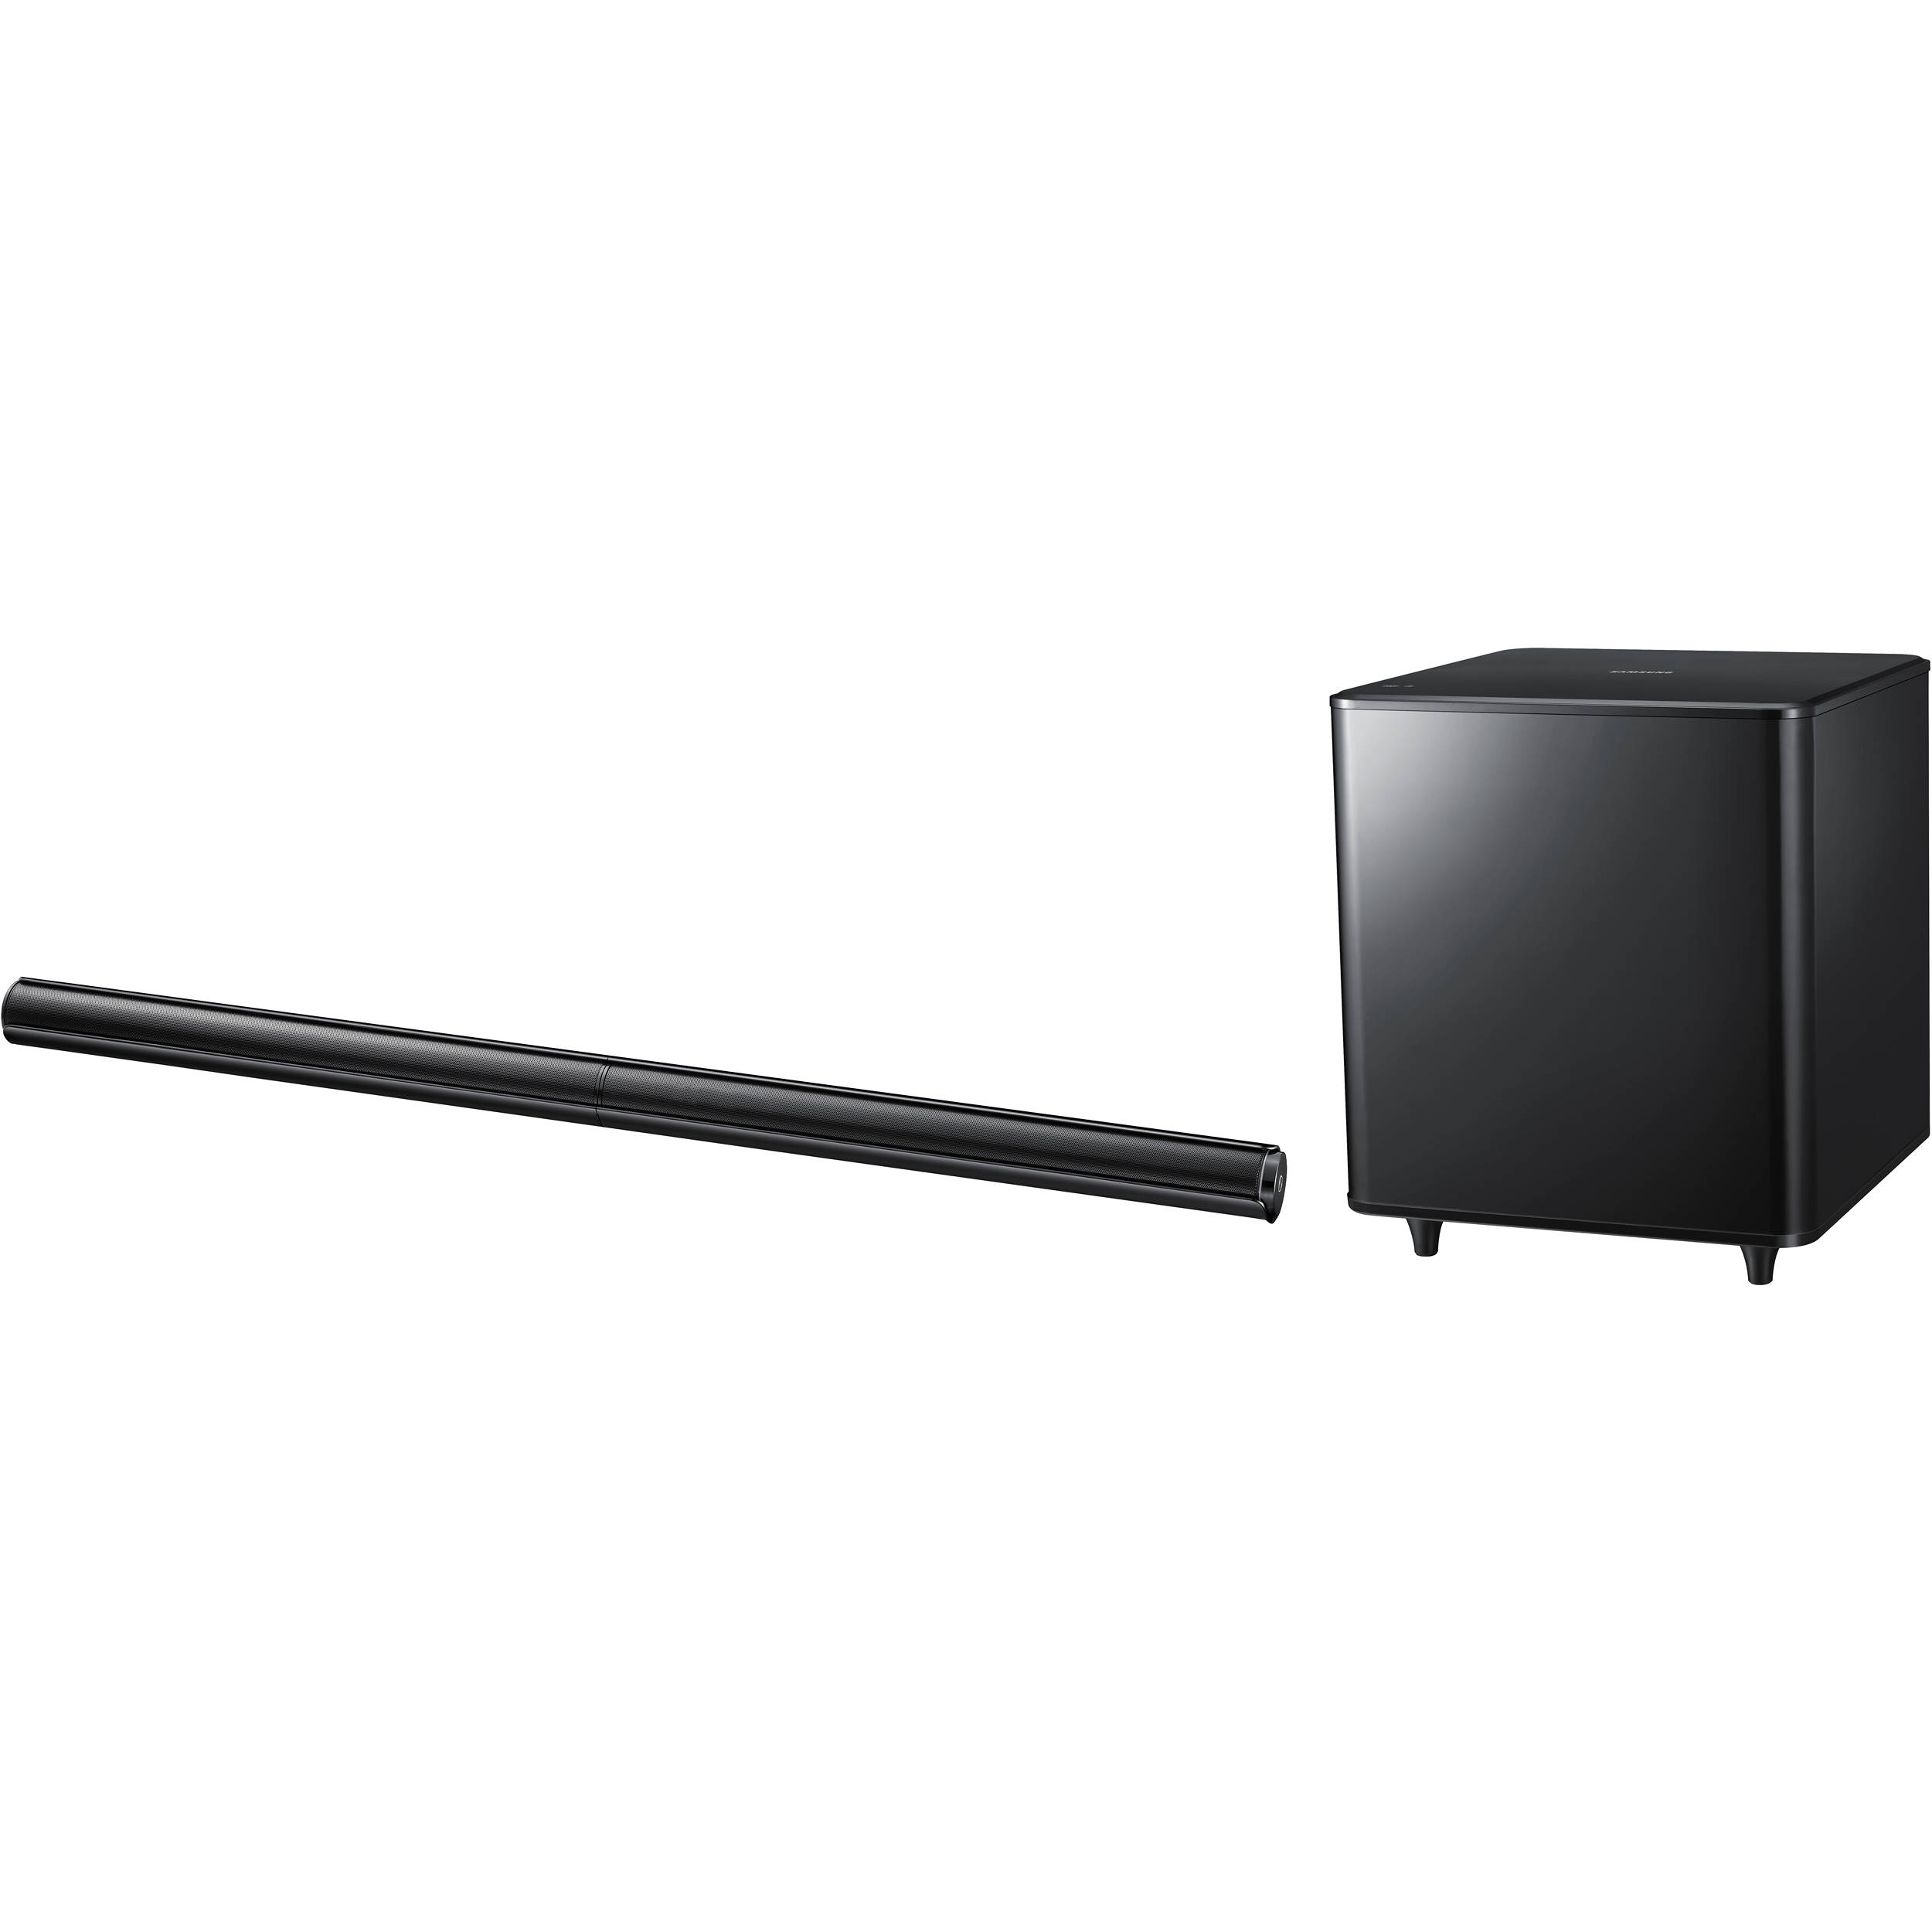 Samsung Hw E550 Soundbar Home Theater Speaker System